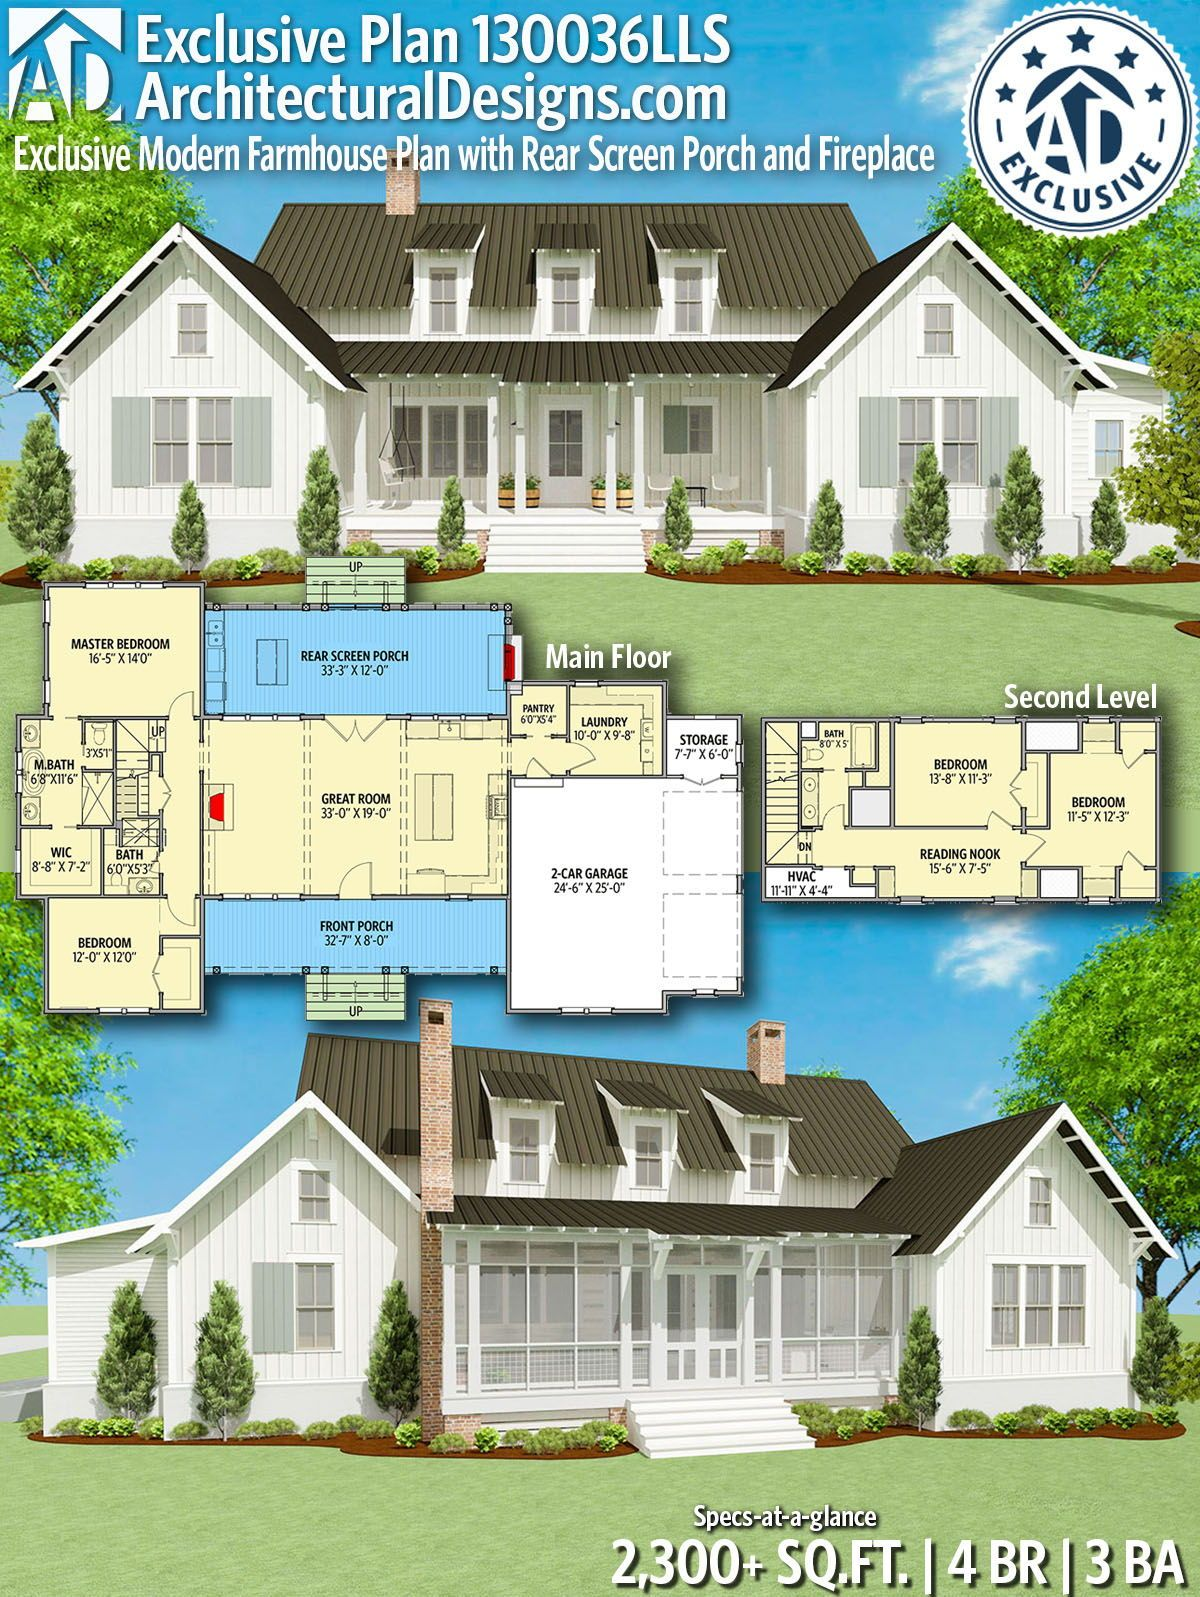 Plan 130036lls Exclusive Modern Farmhouse Plan With Rear